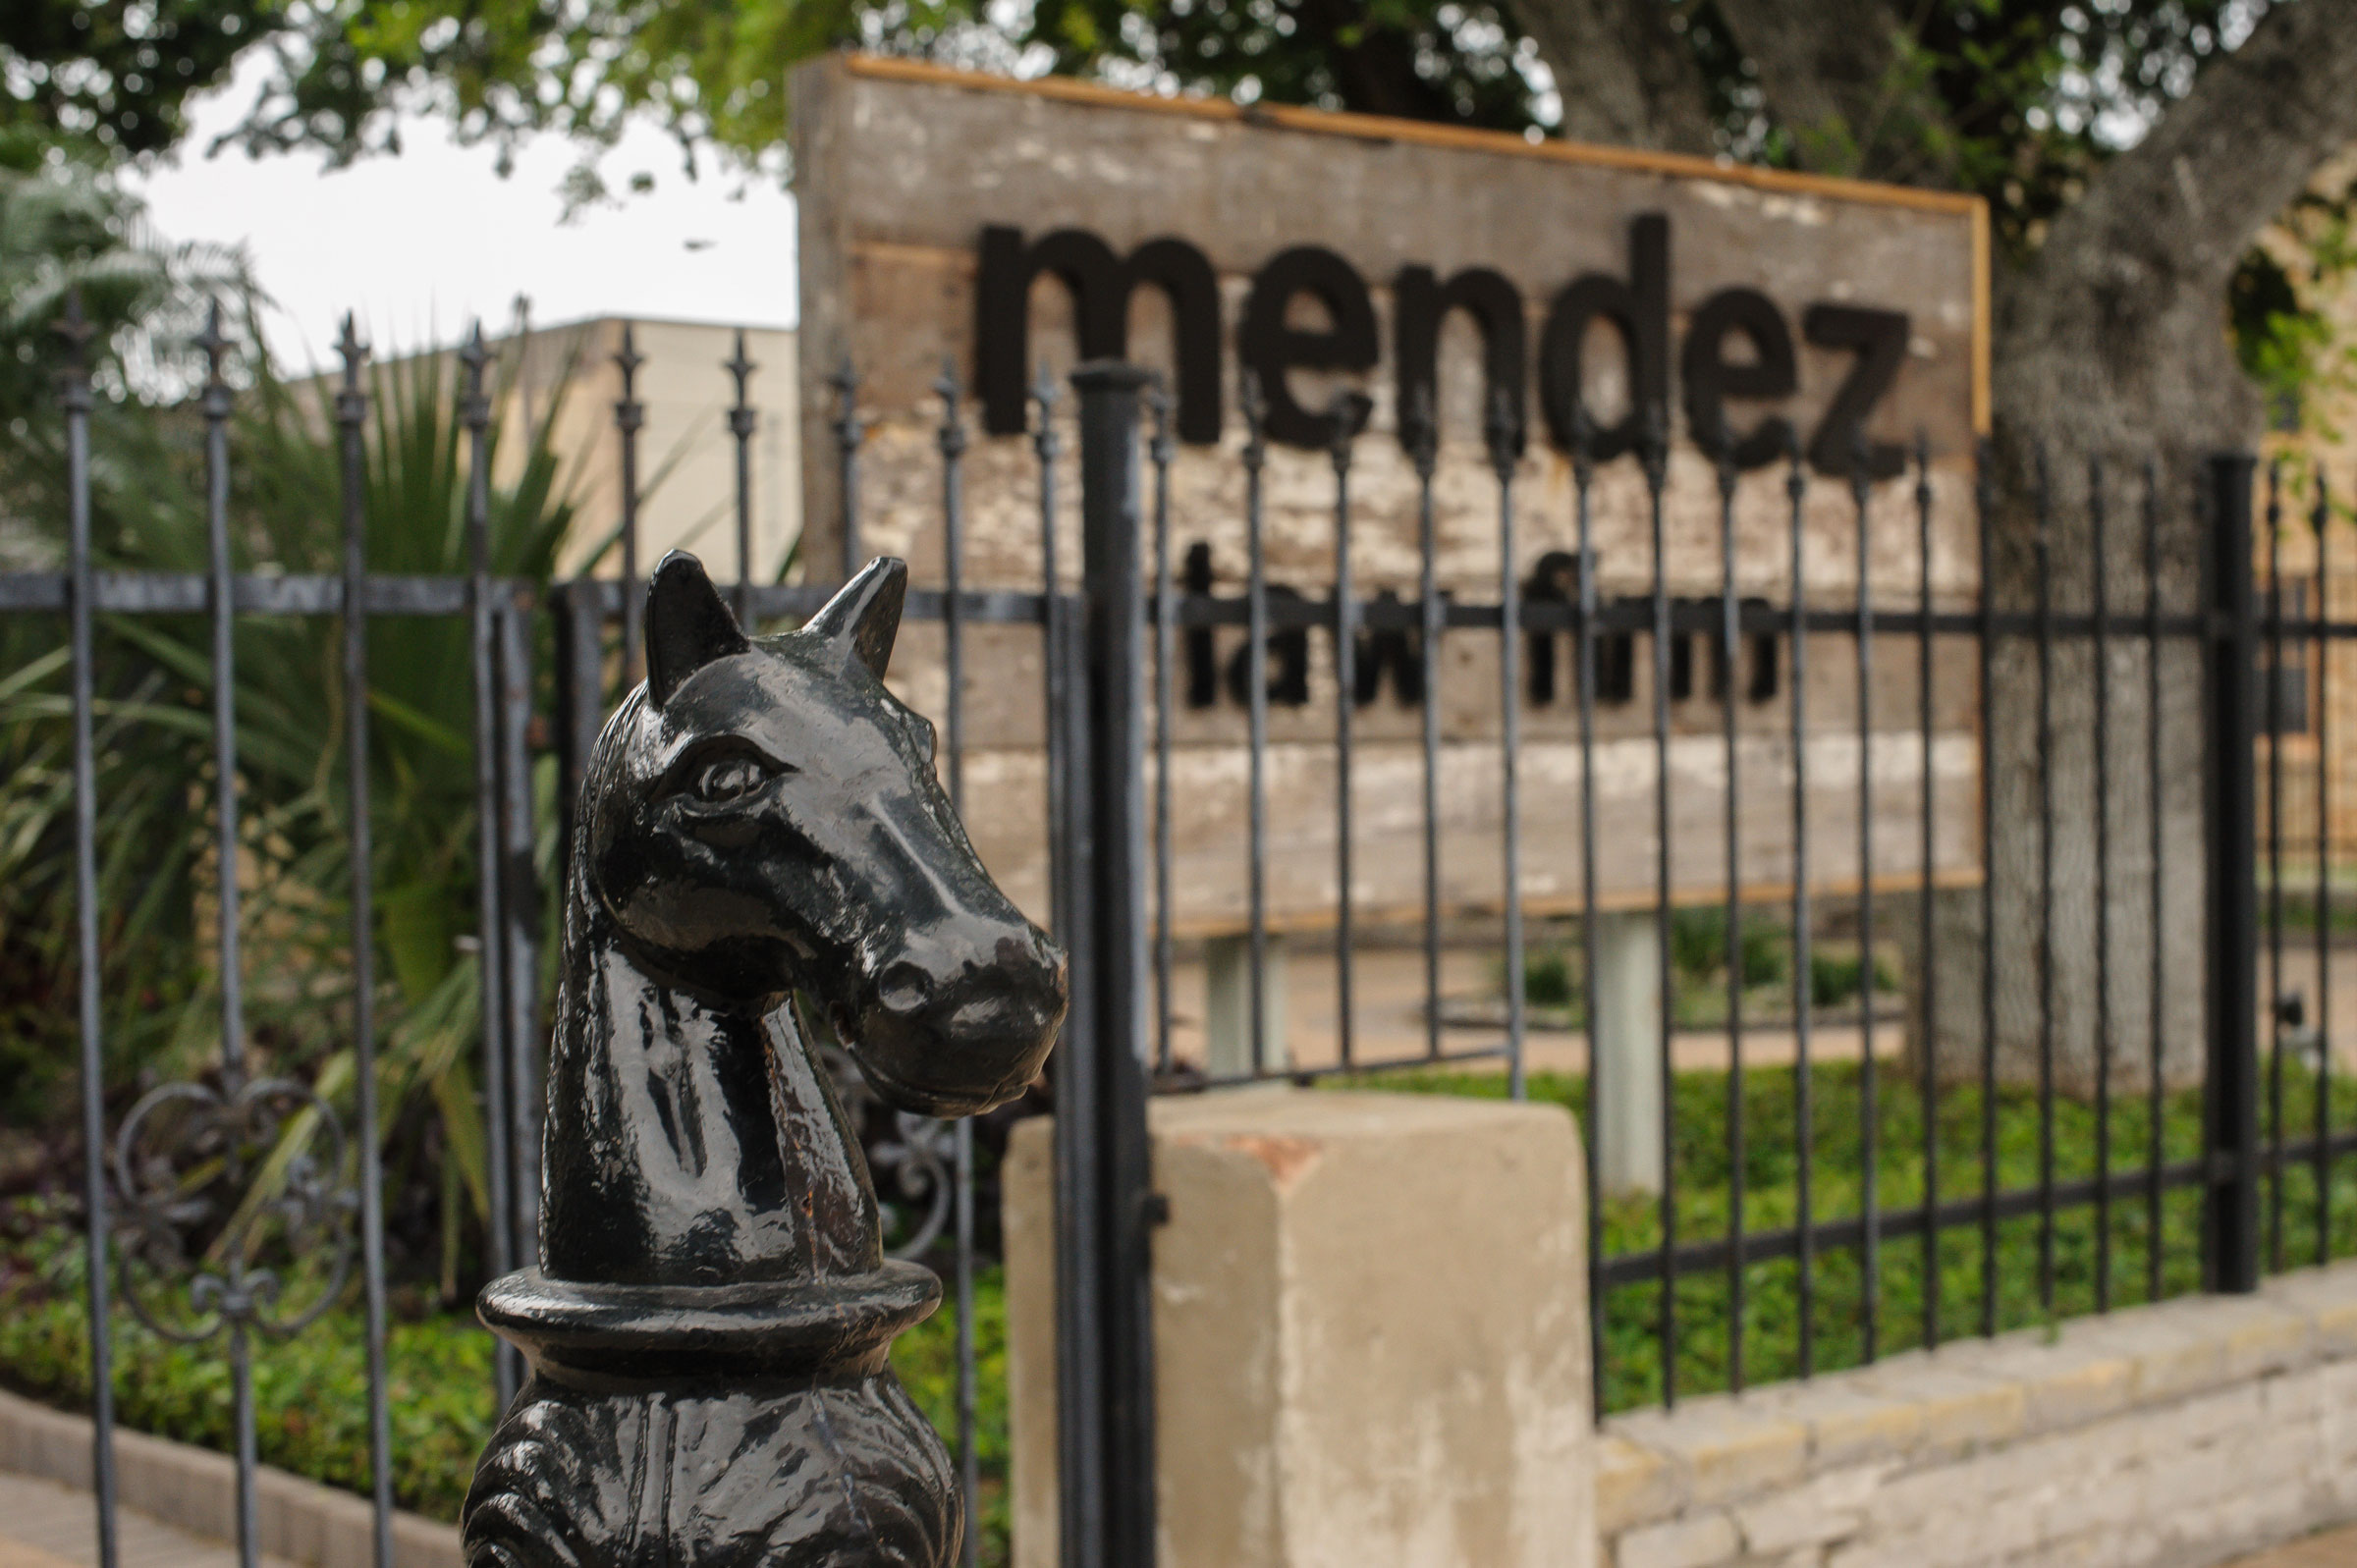 MENDEZ LAW FIRM